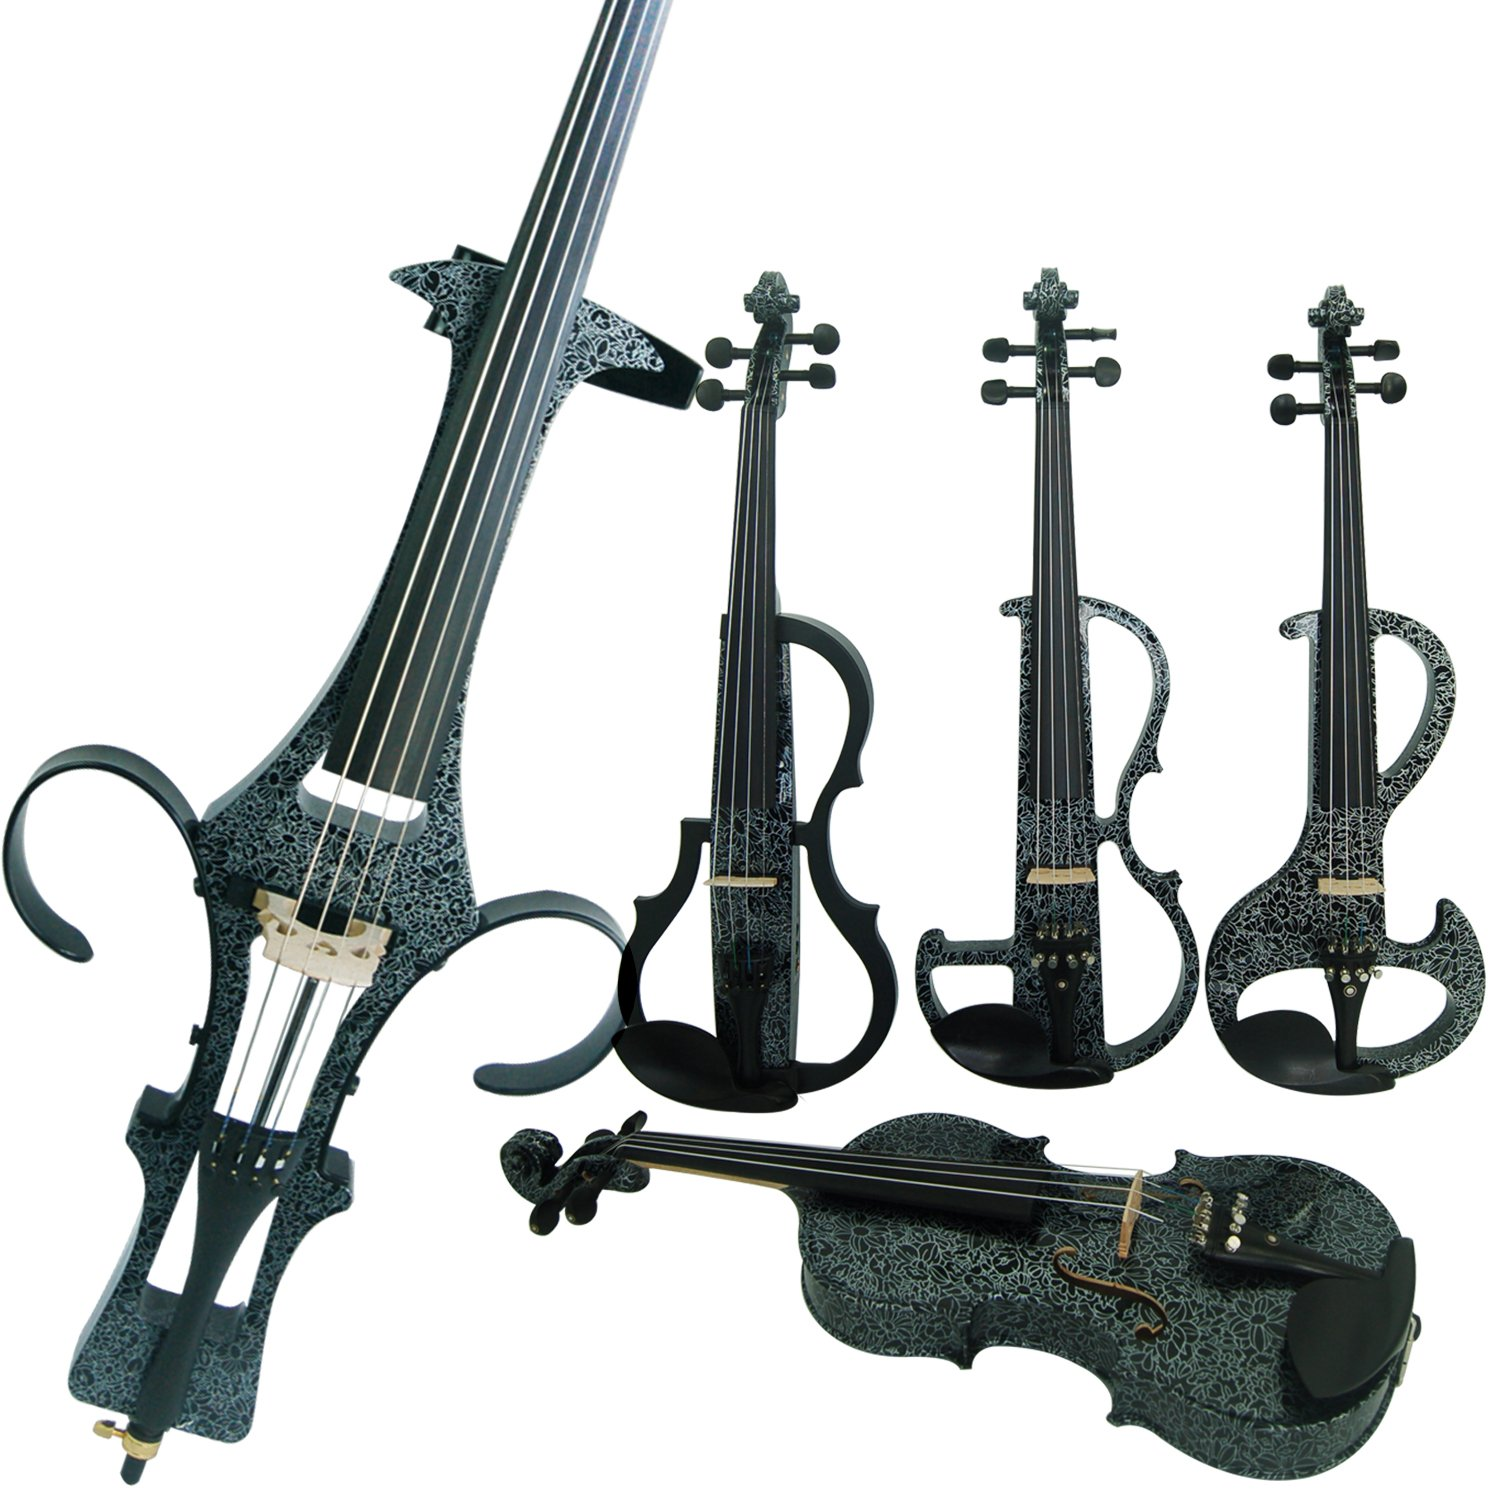 Leeche Premium 4/4 Full Size Solid Wood Electric Cello Violoncello Maple Solid Wood body Ebony Fittings with Bag, Bow, Rosin, Aux Cable, Earphone, Extra set of Strings(Art White Flowers)